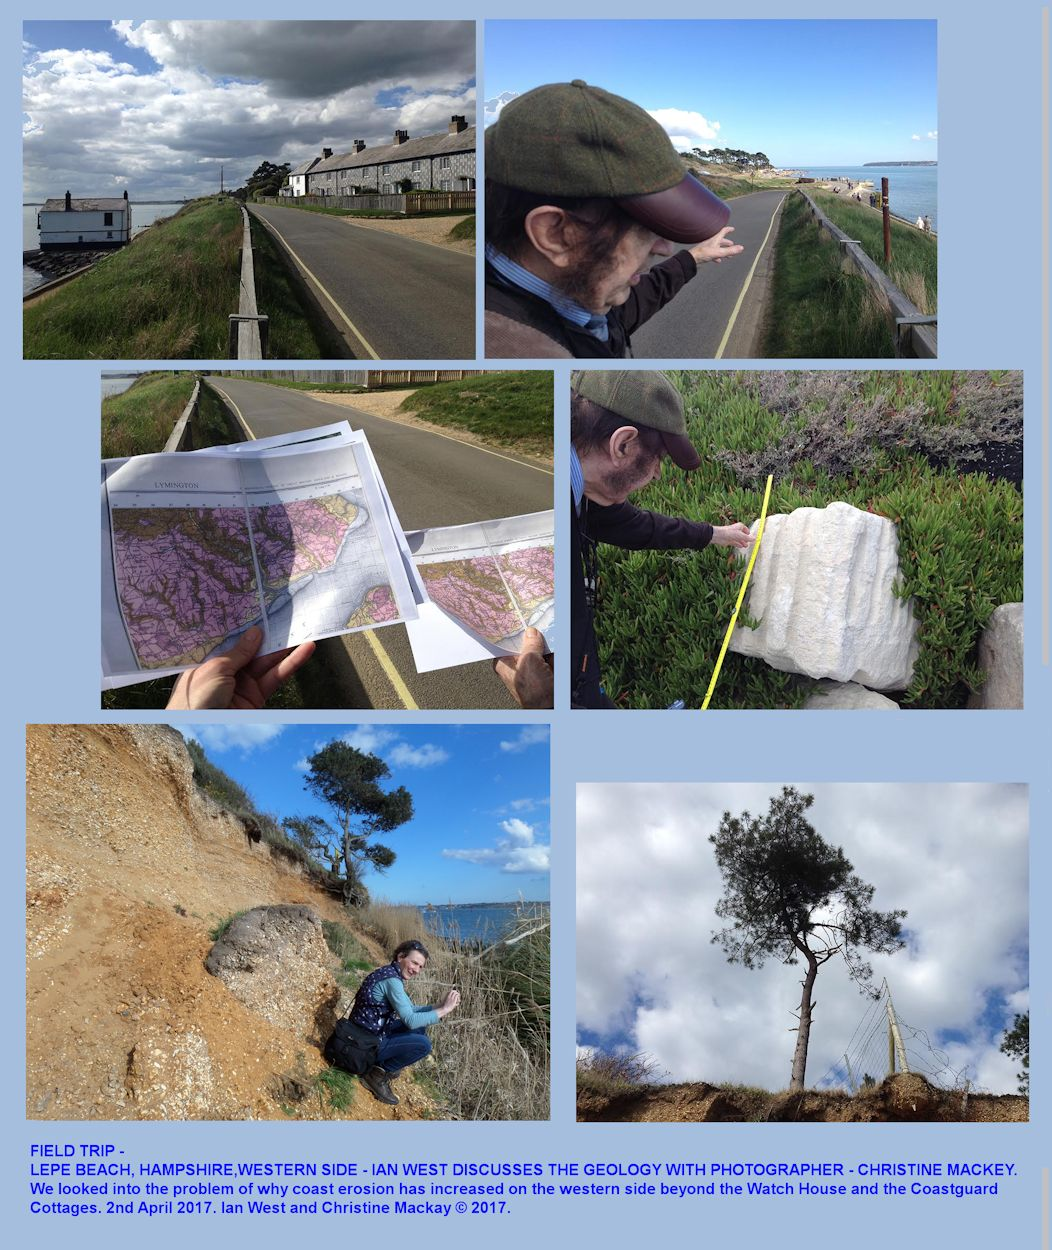 Introduction to the geology of Lepe Beach, Hampshire, with photographs by Christine Mackey, 2017